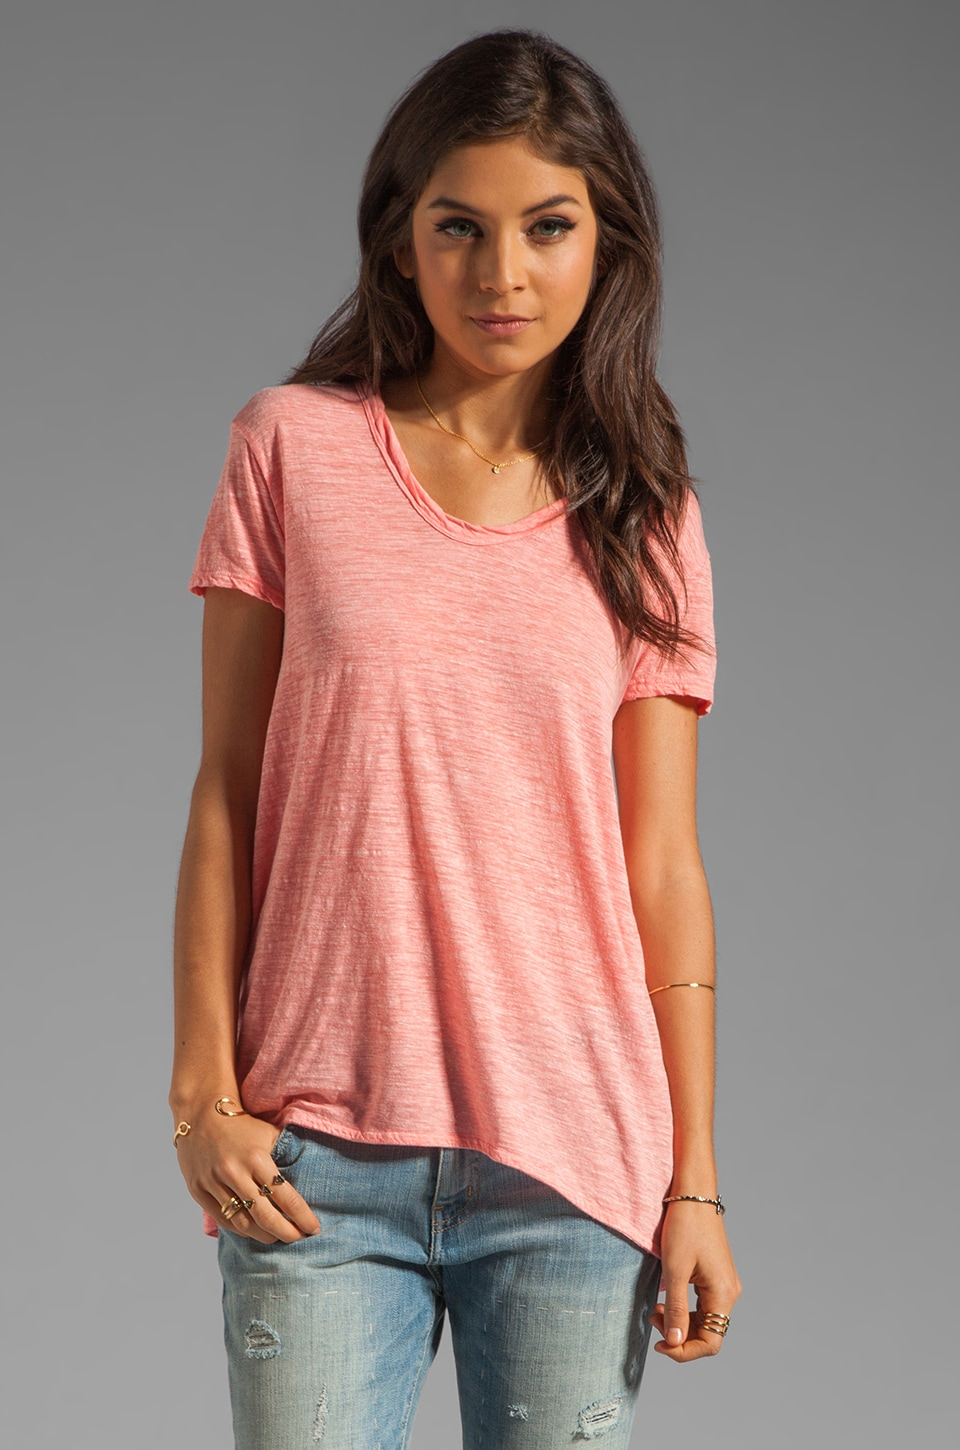 Wilt Heathered Slub Slouchy Boyfriend Tee in Melon Heather